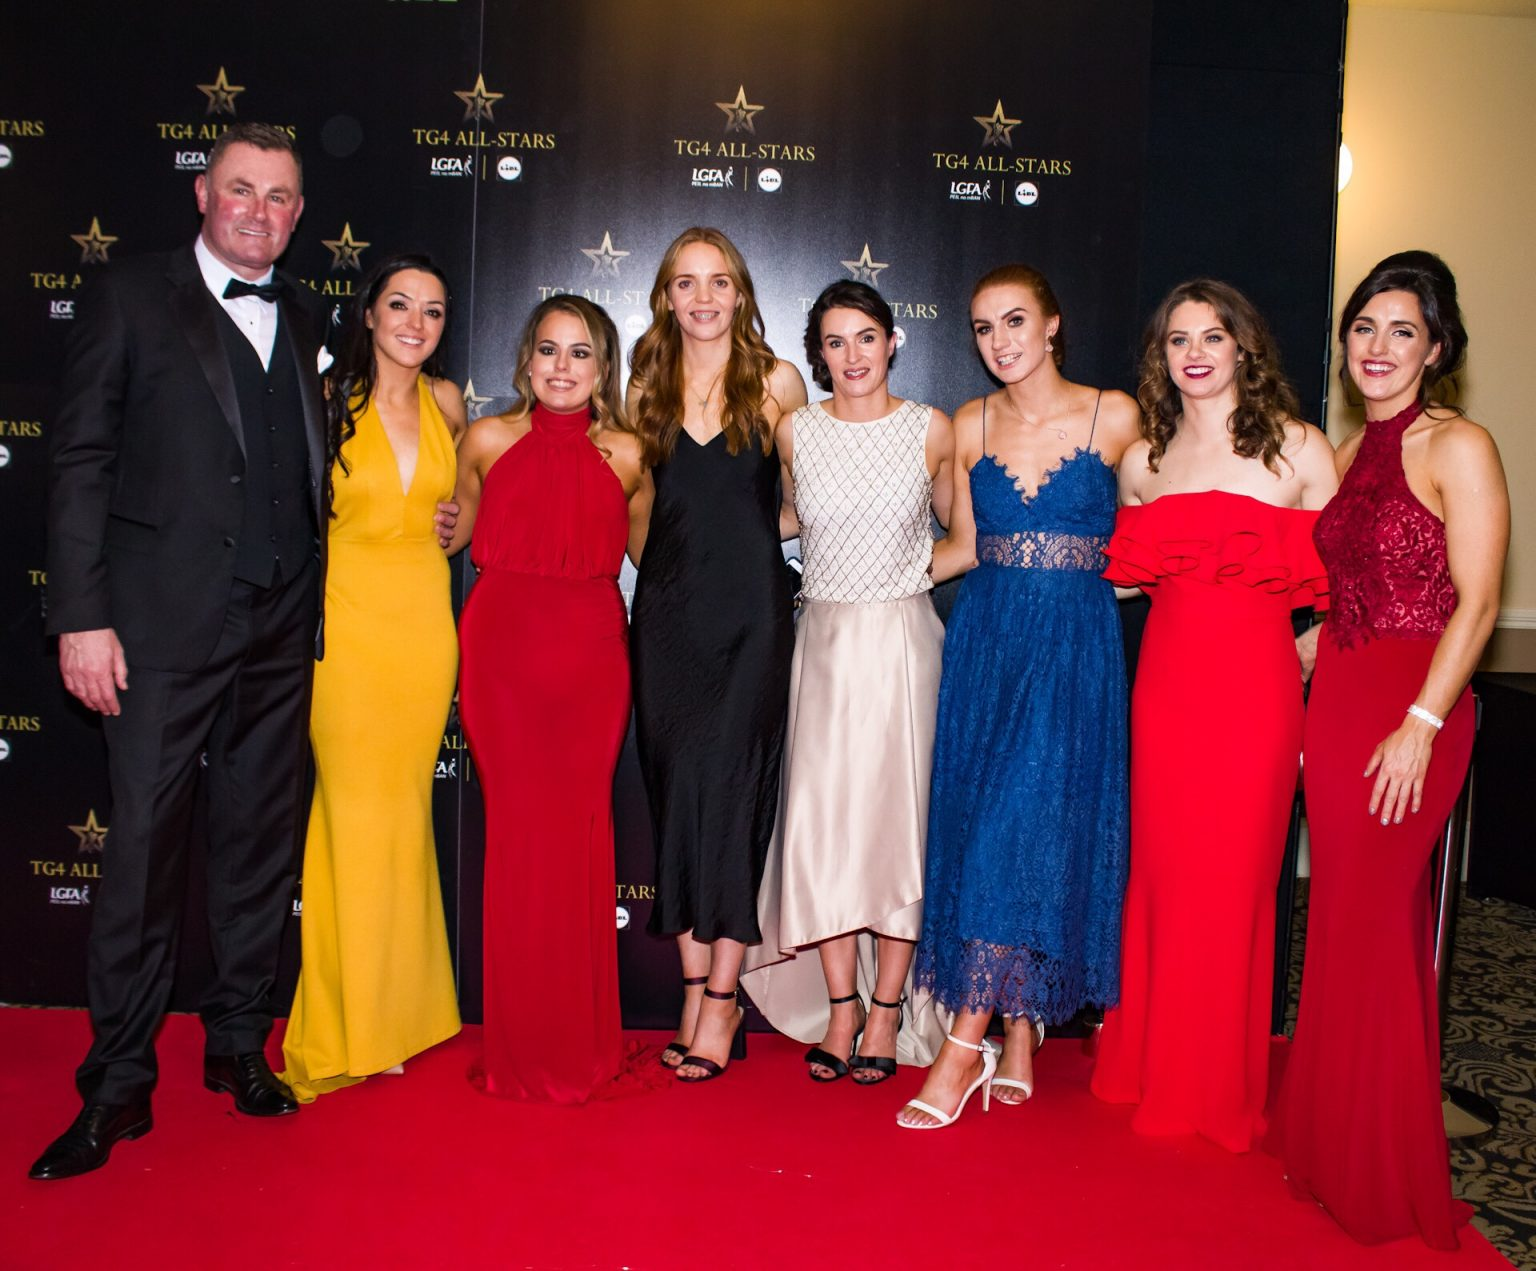 Dublin manager Mick Bohan in a black suit and bow tie with members of the Dublin ladies Football team.